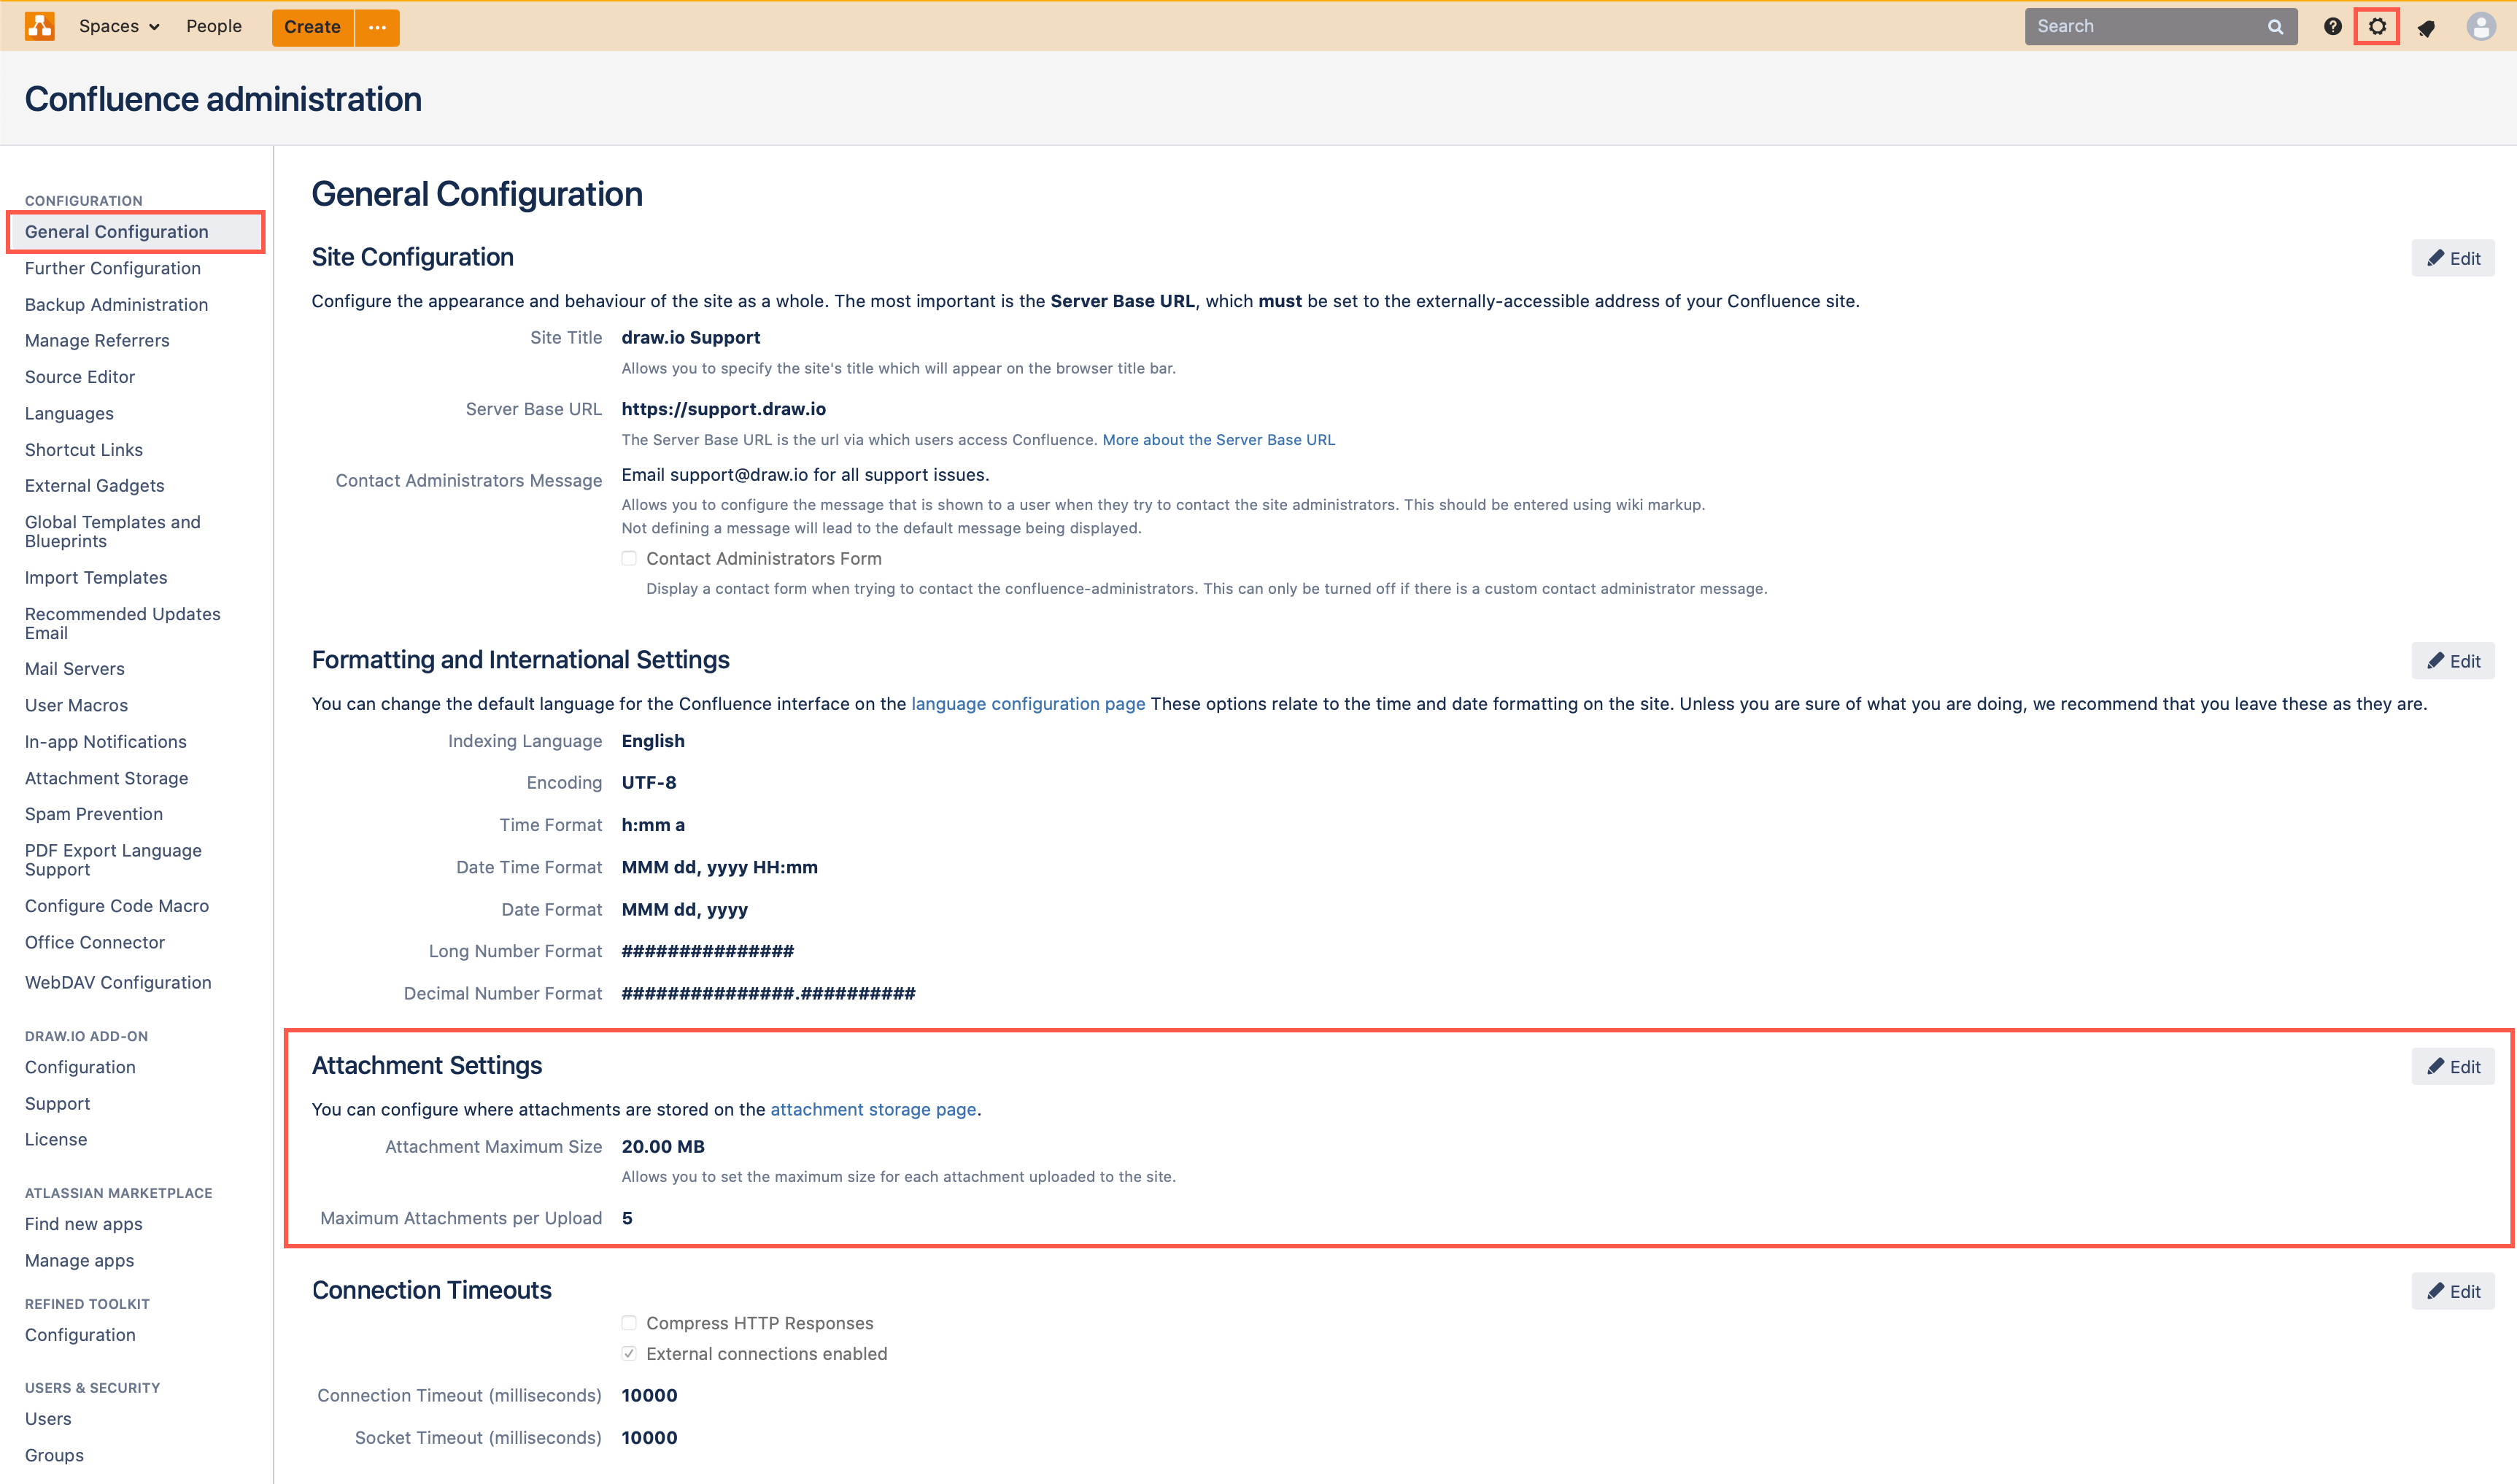 Confluence Server attachment settings in the General Configuration section of your Server settings